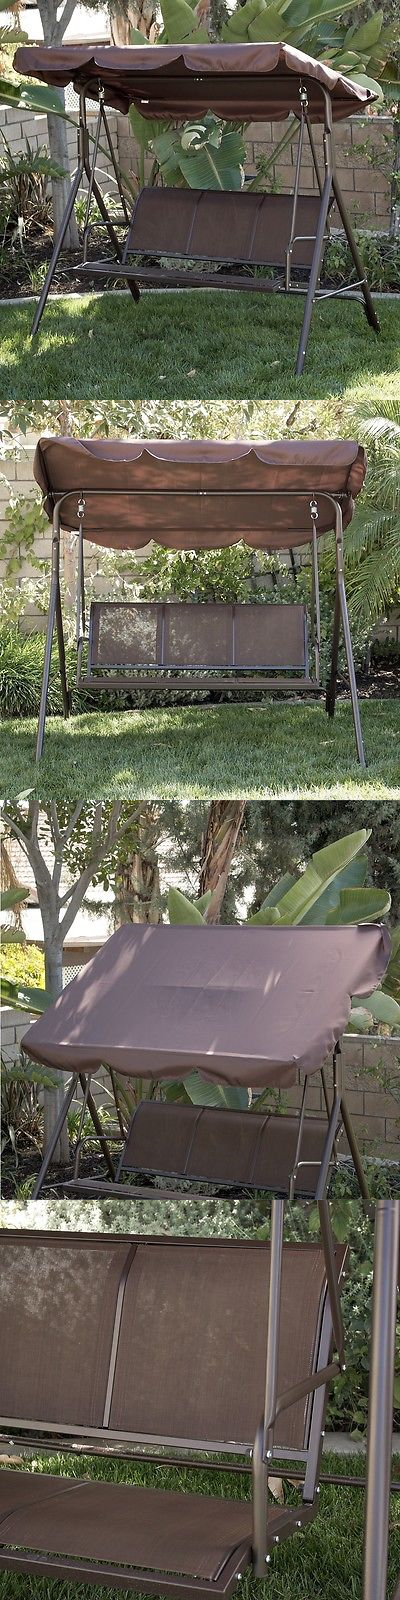 Swings 79700: 3 Person Patio Swing Outdoor Canopy Awning Yard Furniture  Hammock Steel